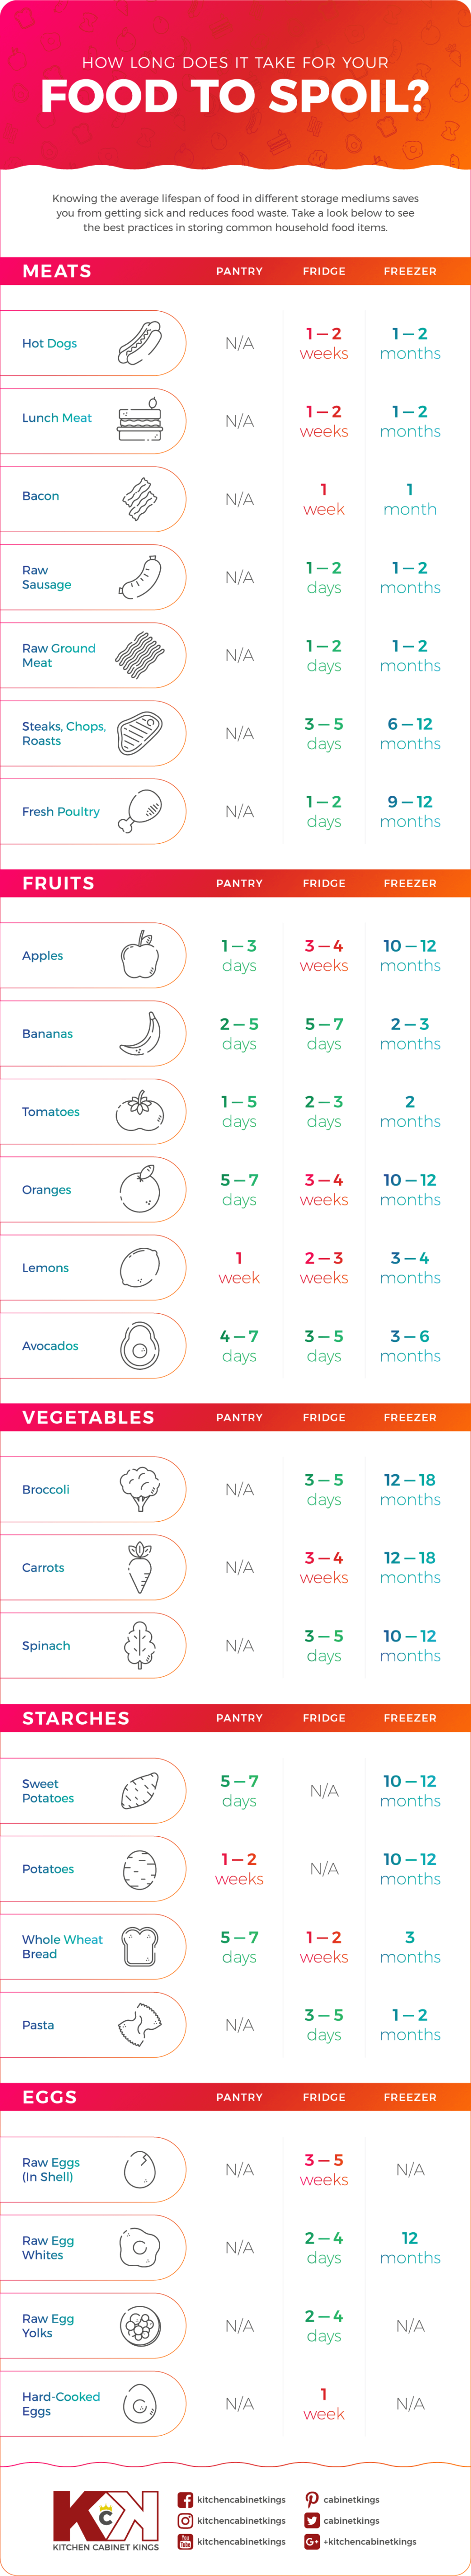 how-long-does-it-take-for-food-to-spoil-infographic